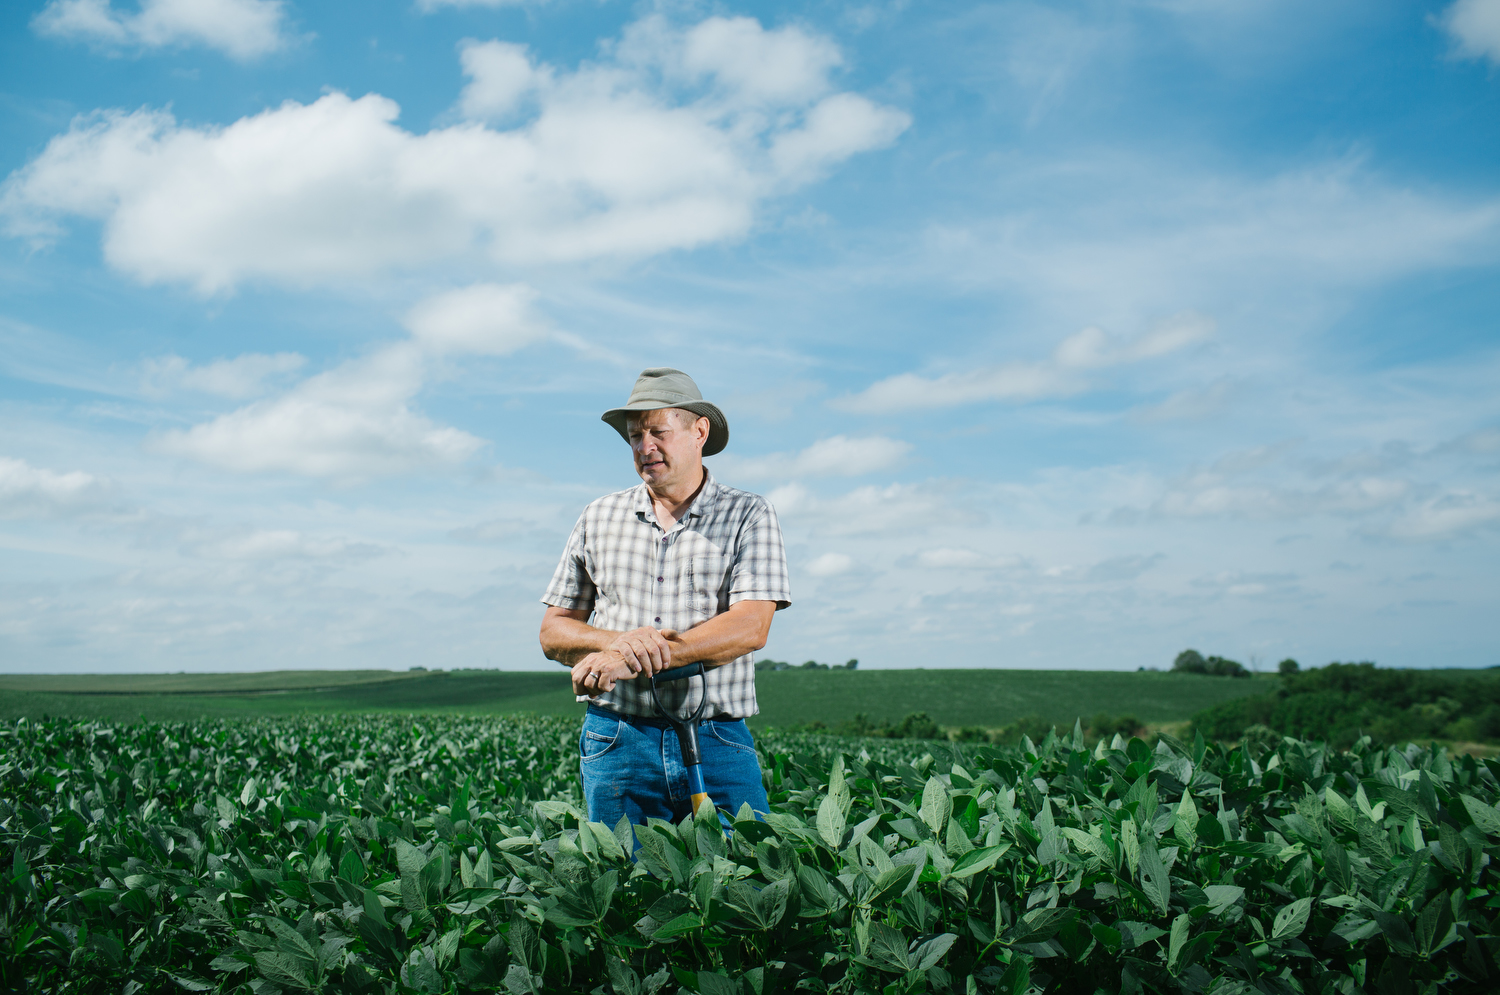 Chris Teachout     Soy and corn farmer using sustainable practices in Shenandoah, Iowa